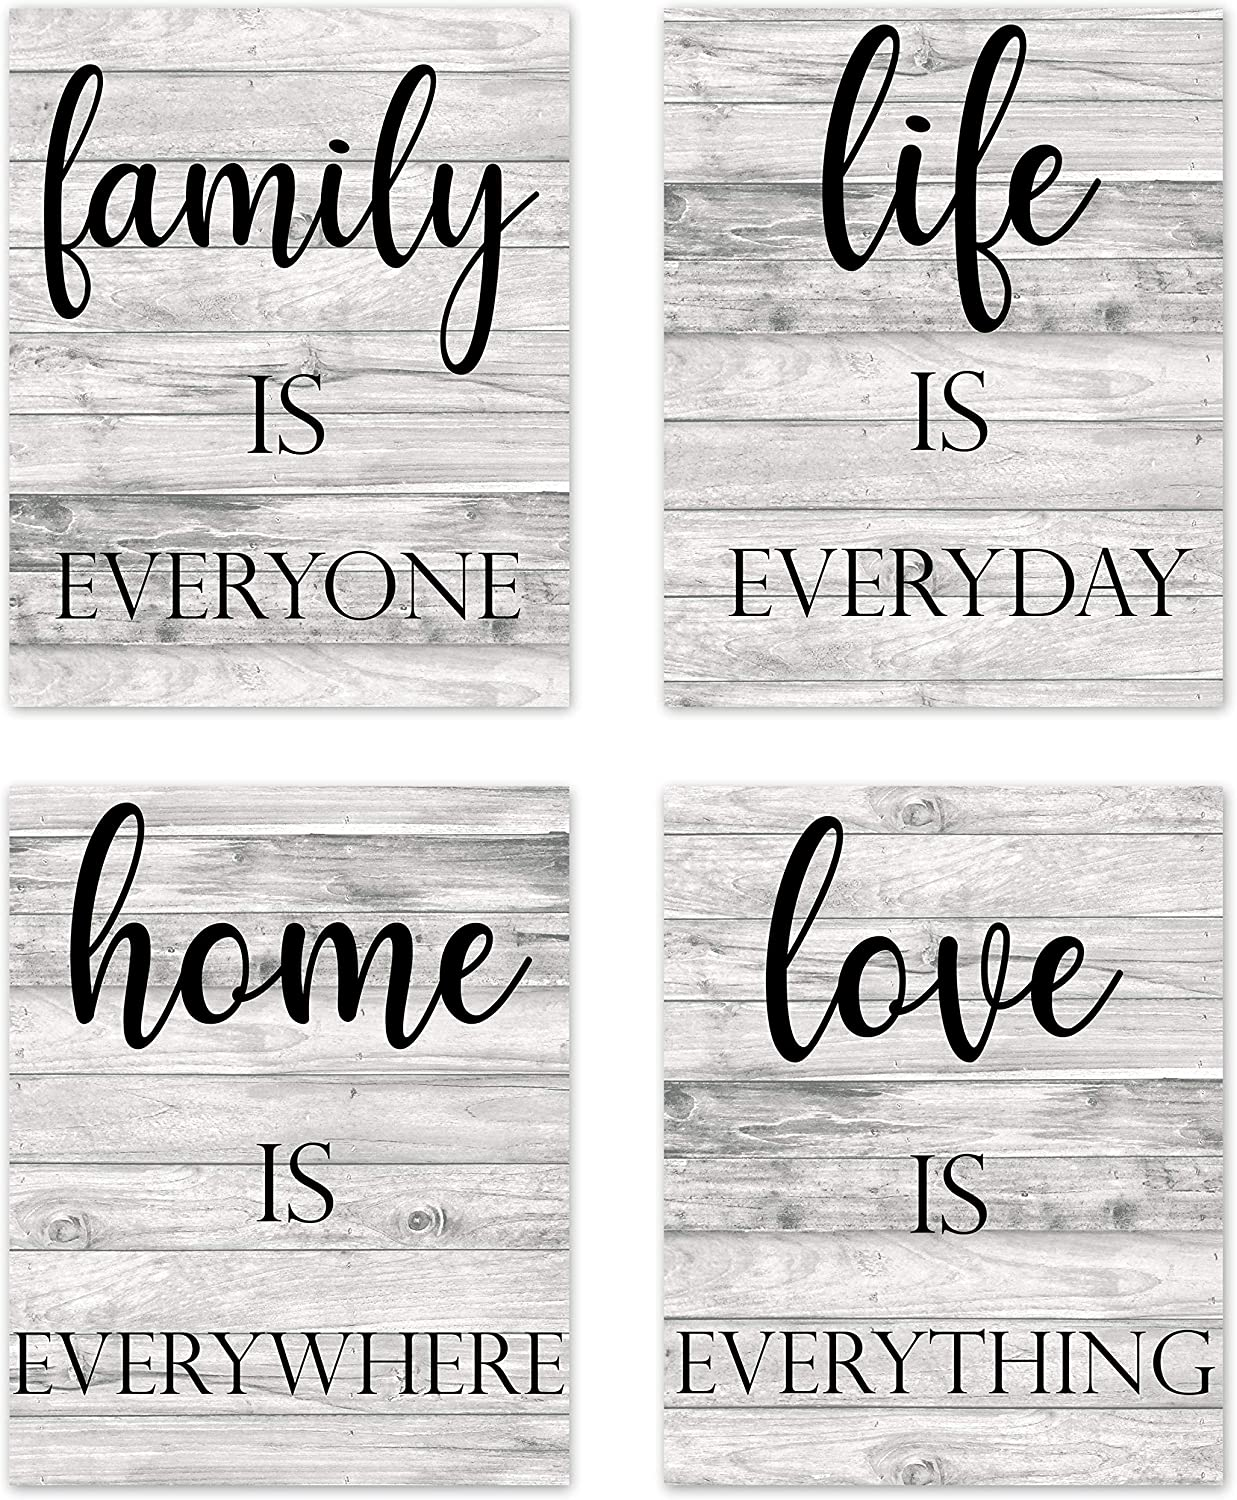 Rustic Farmhouse Family Inspirational Quotes Sayings Wall Art Posters Home Living Room Decor Boho Country Wood Grain Positive Motivational Vintage Pictures Prints Decorations for Bedroom Bathroom